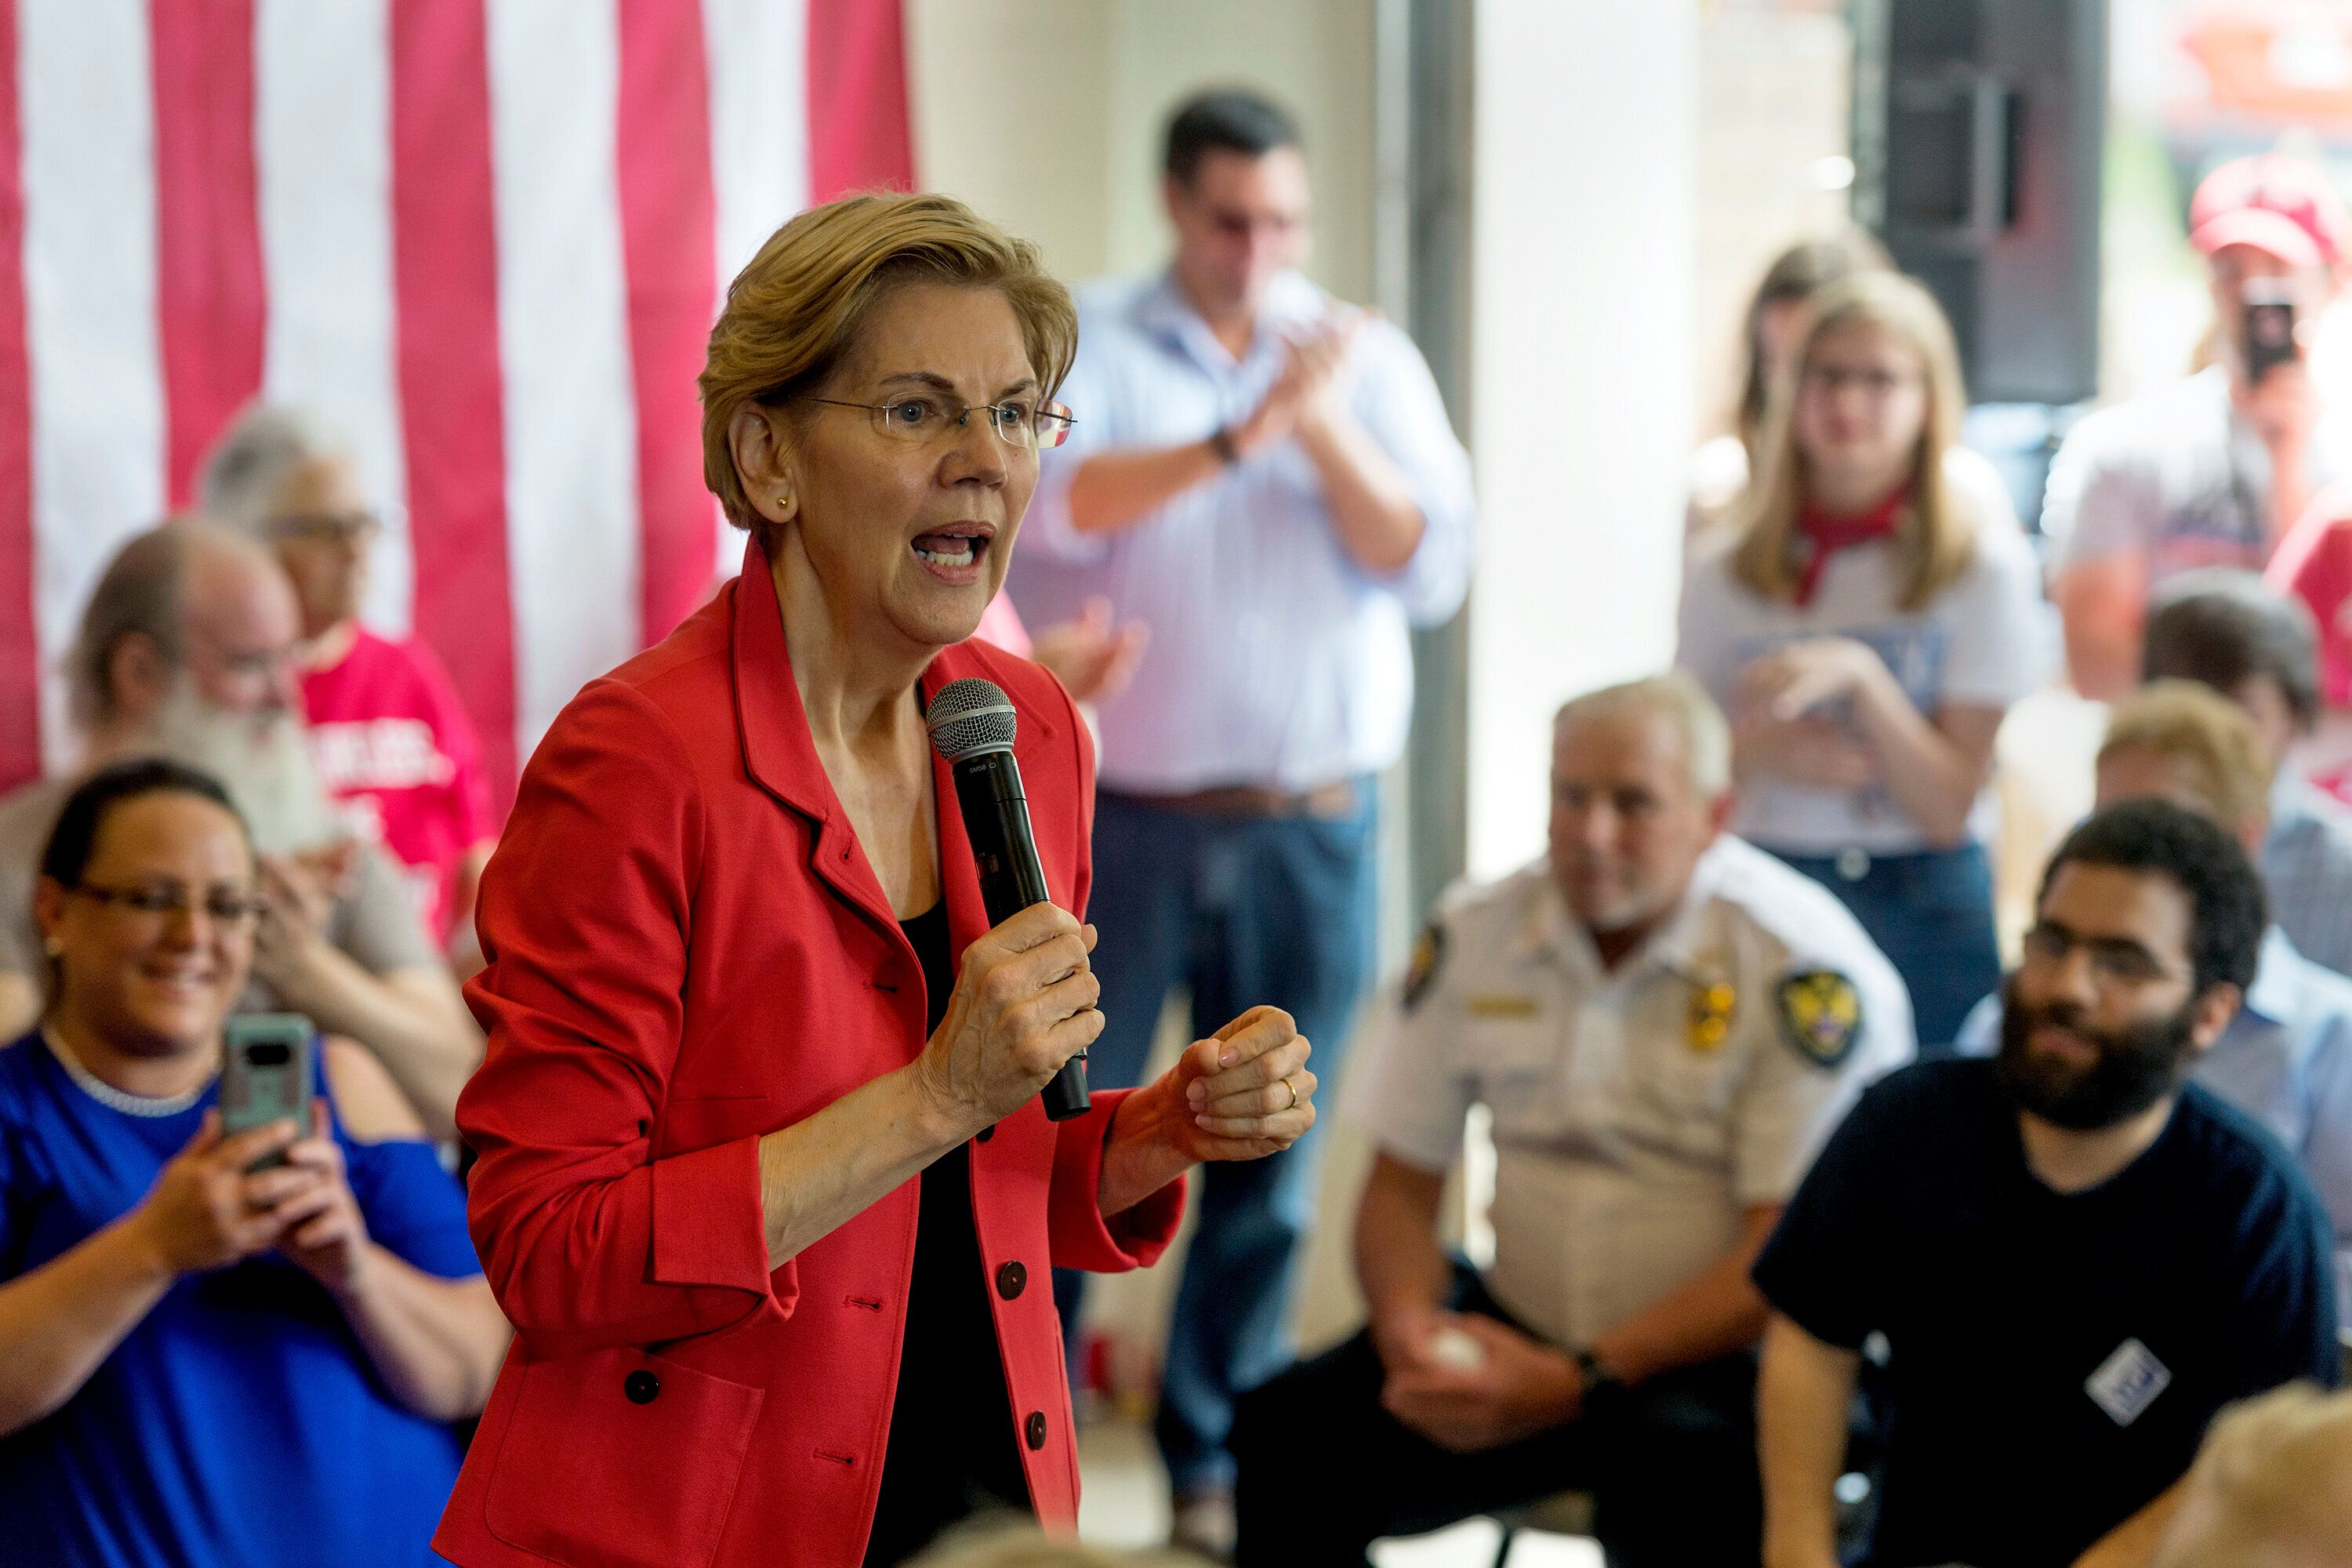 Sen. Elizabeth Warren (D-Mass.) is not going to do a town hall on Fox News.